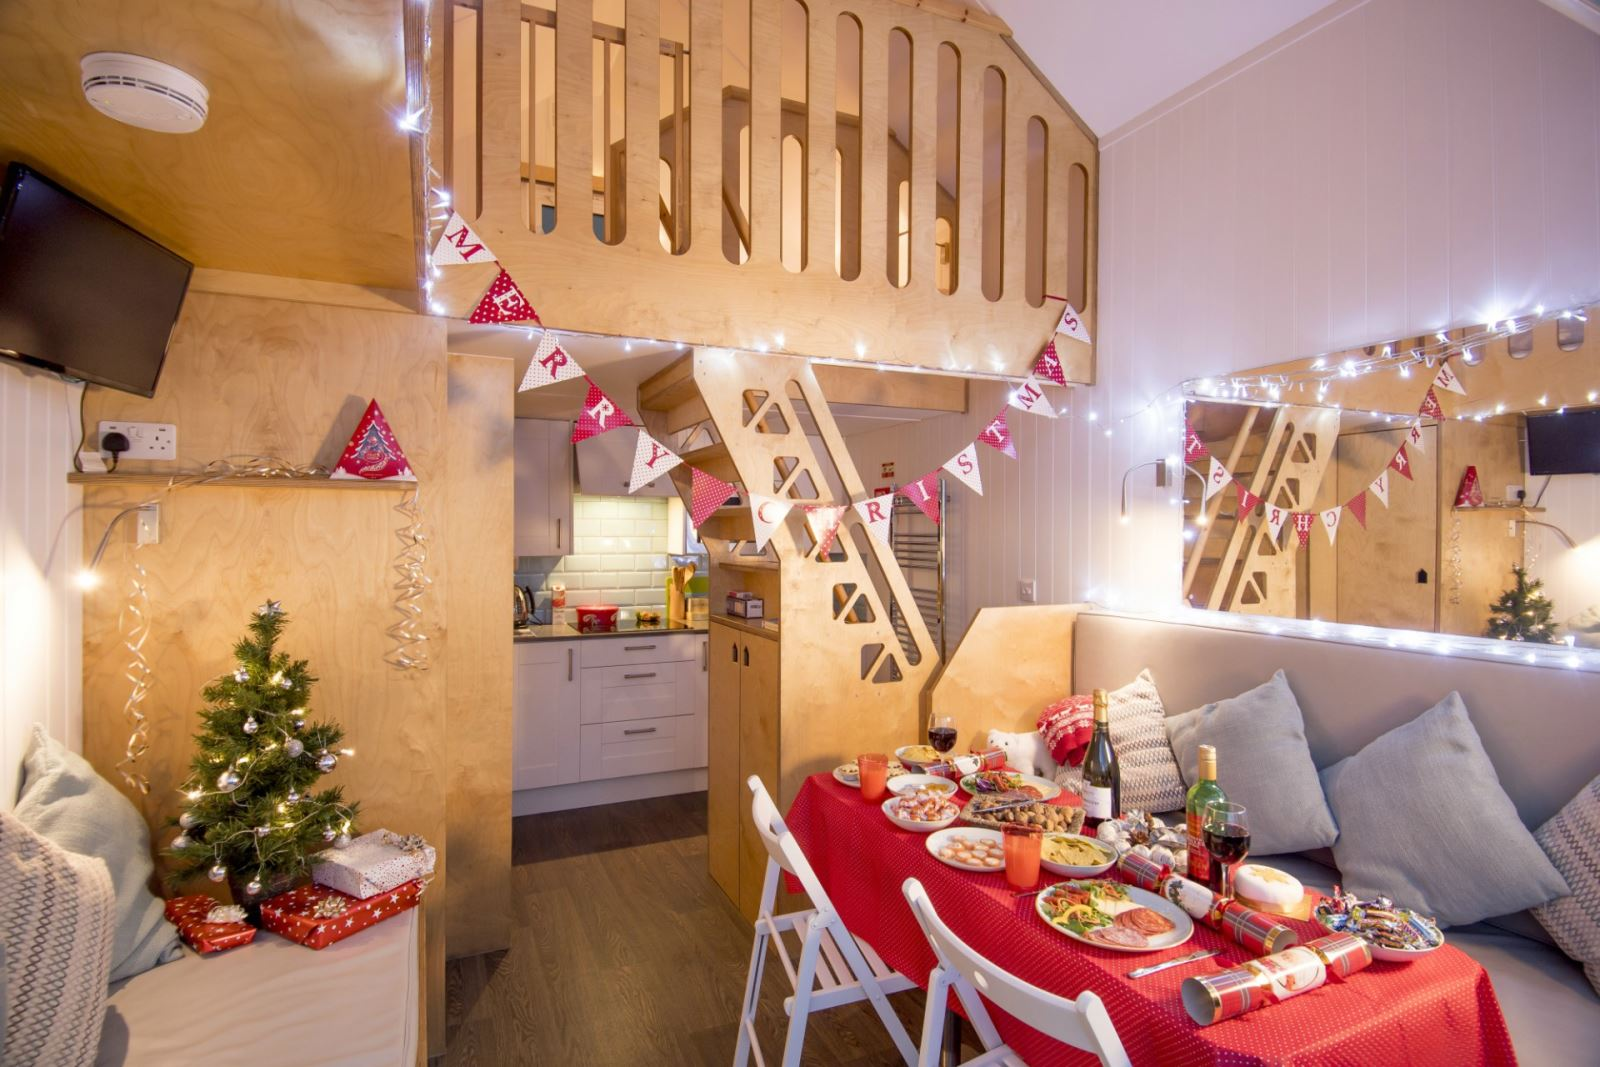 A view inside the Bournemouth beach lodges, with the interior bedecked in Christmas decorations and a table laid for a traditional Christmas dinner